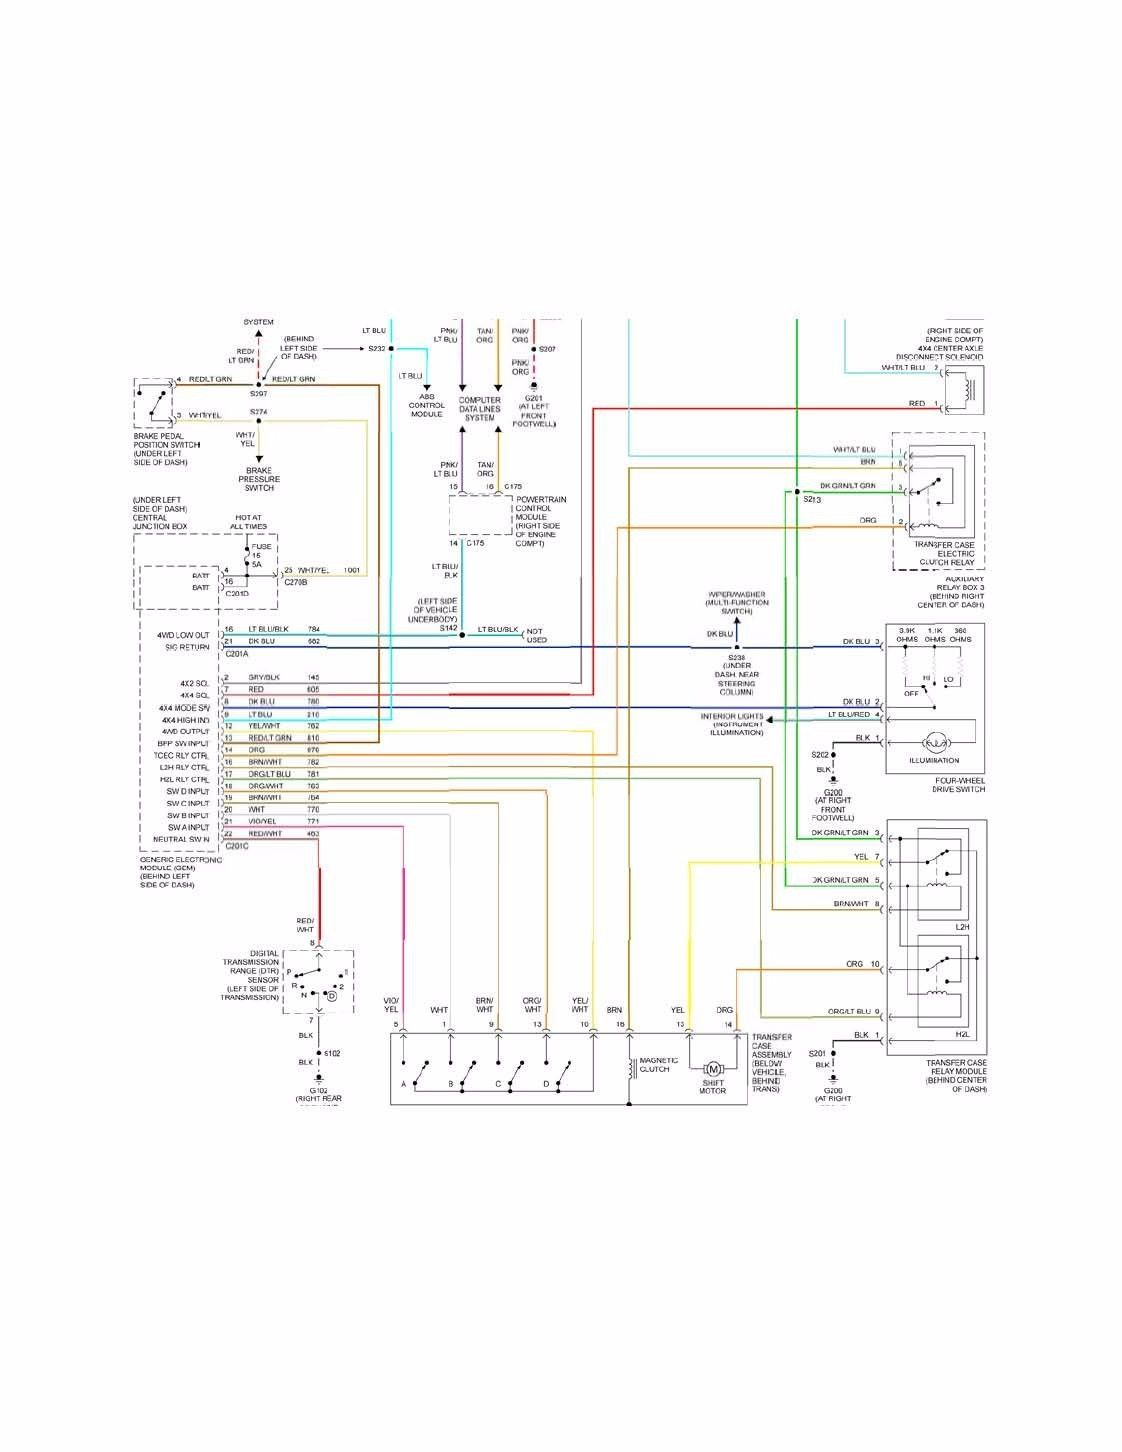 wiring diagram 2003 ford f 150 supercrew    ford       f       150       2003    complete color    wiring       diagram    schematic 4     ford       f       150       2003    complete color    wiring       diagram    schematic 4